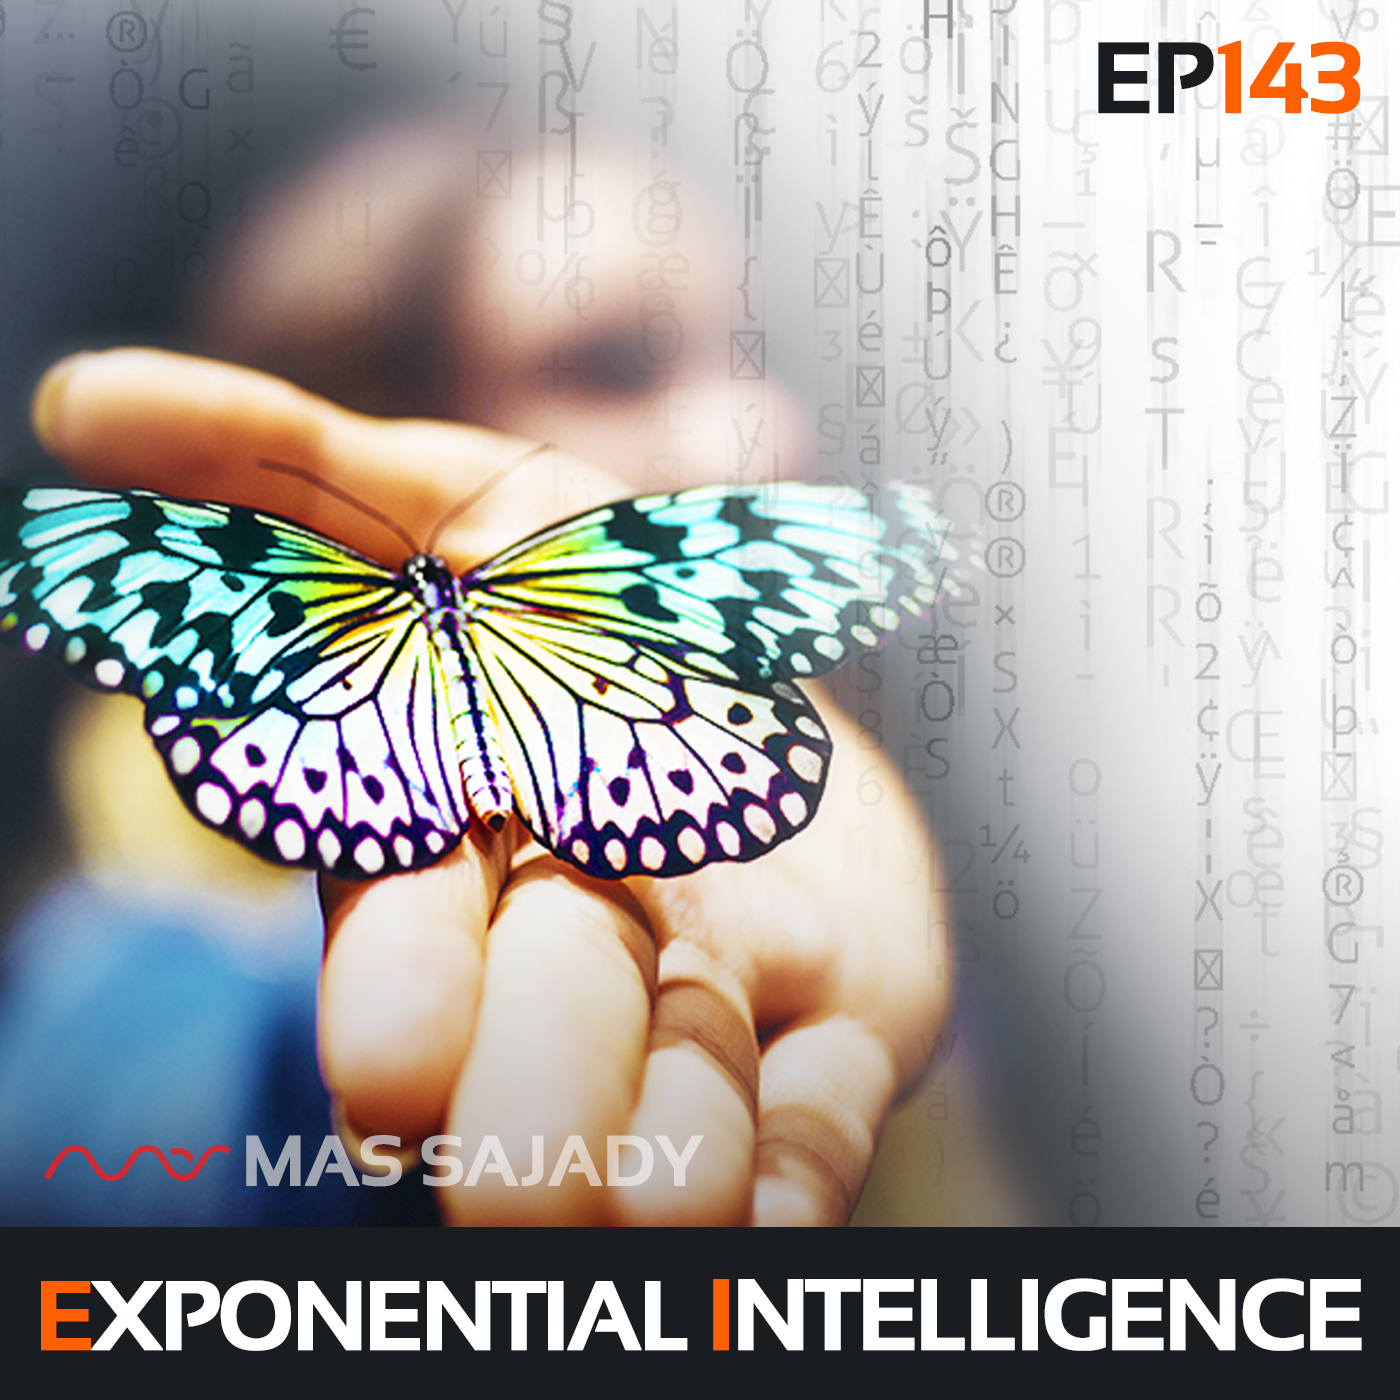 mas-sajady-exponential-intelligence-podcast-143-why-most-people-are-not-wealthy-happy.png